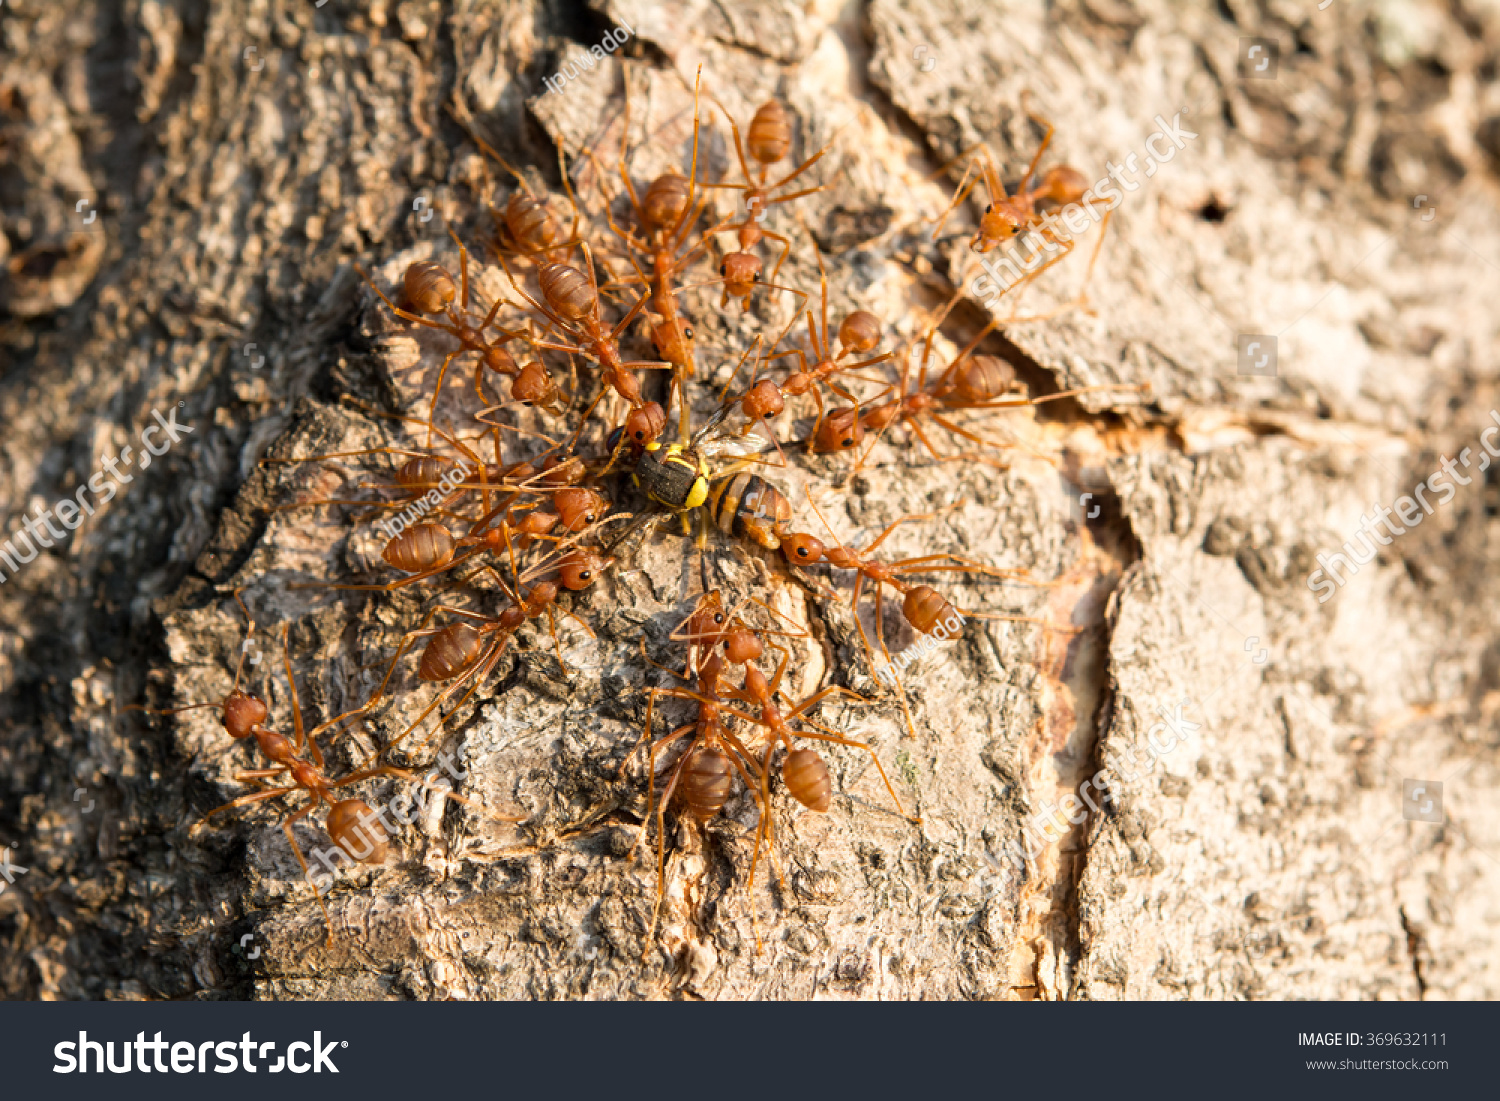 Red Ant Swarming Fly Food Stock Photo 369632111 - Shutterstock